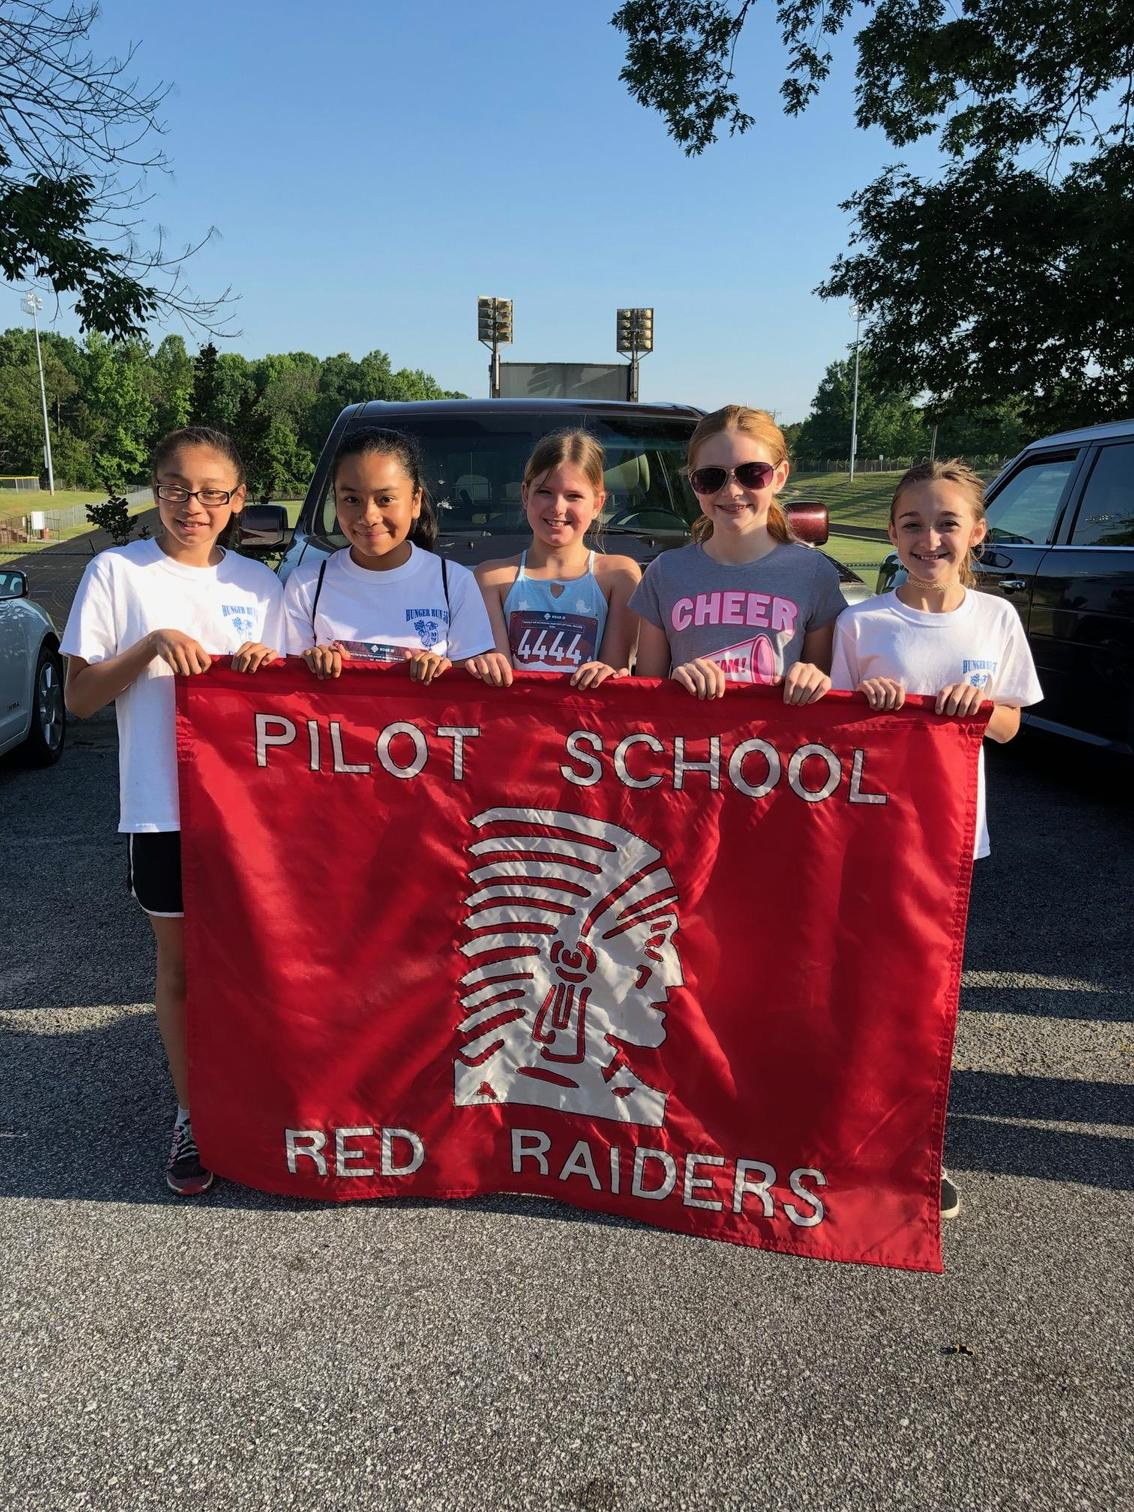 5 members of Pilot Run Club hold